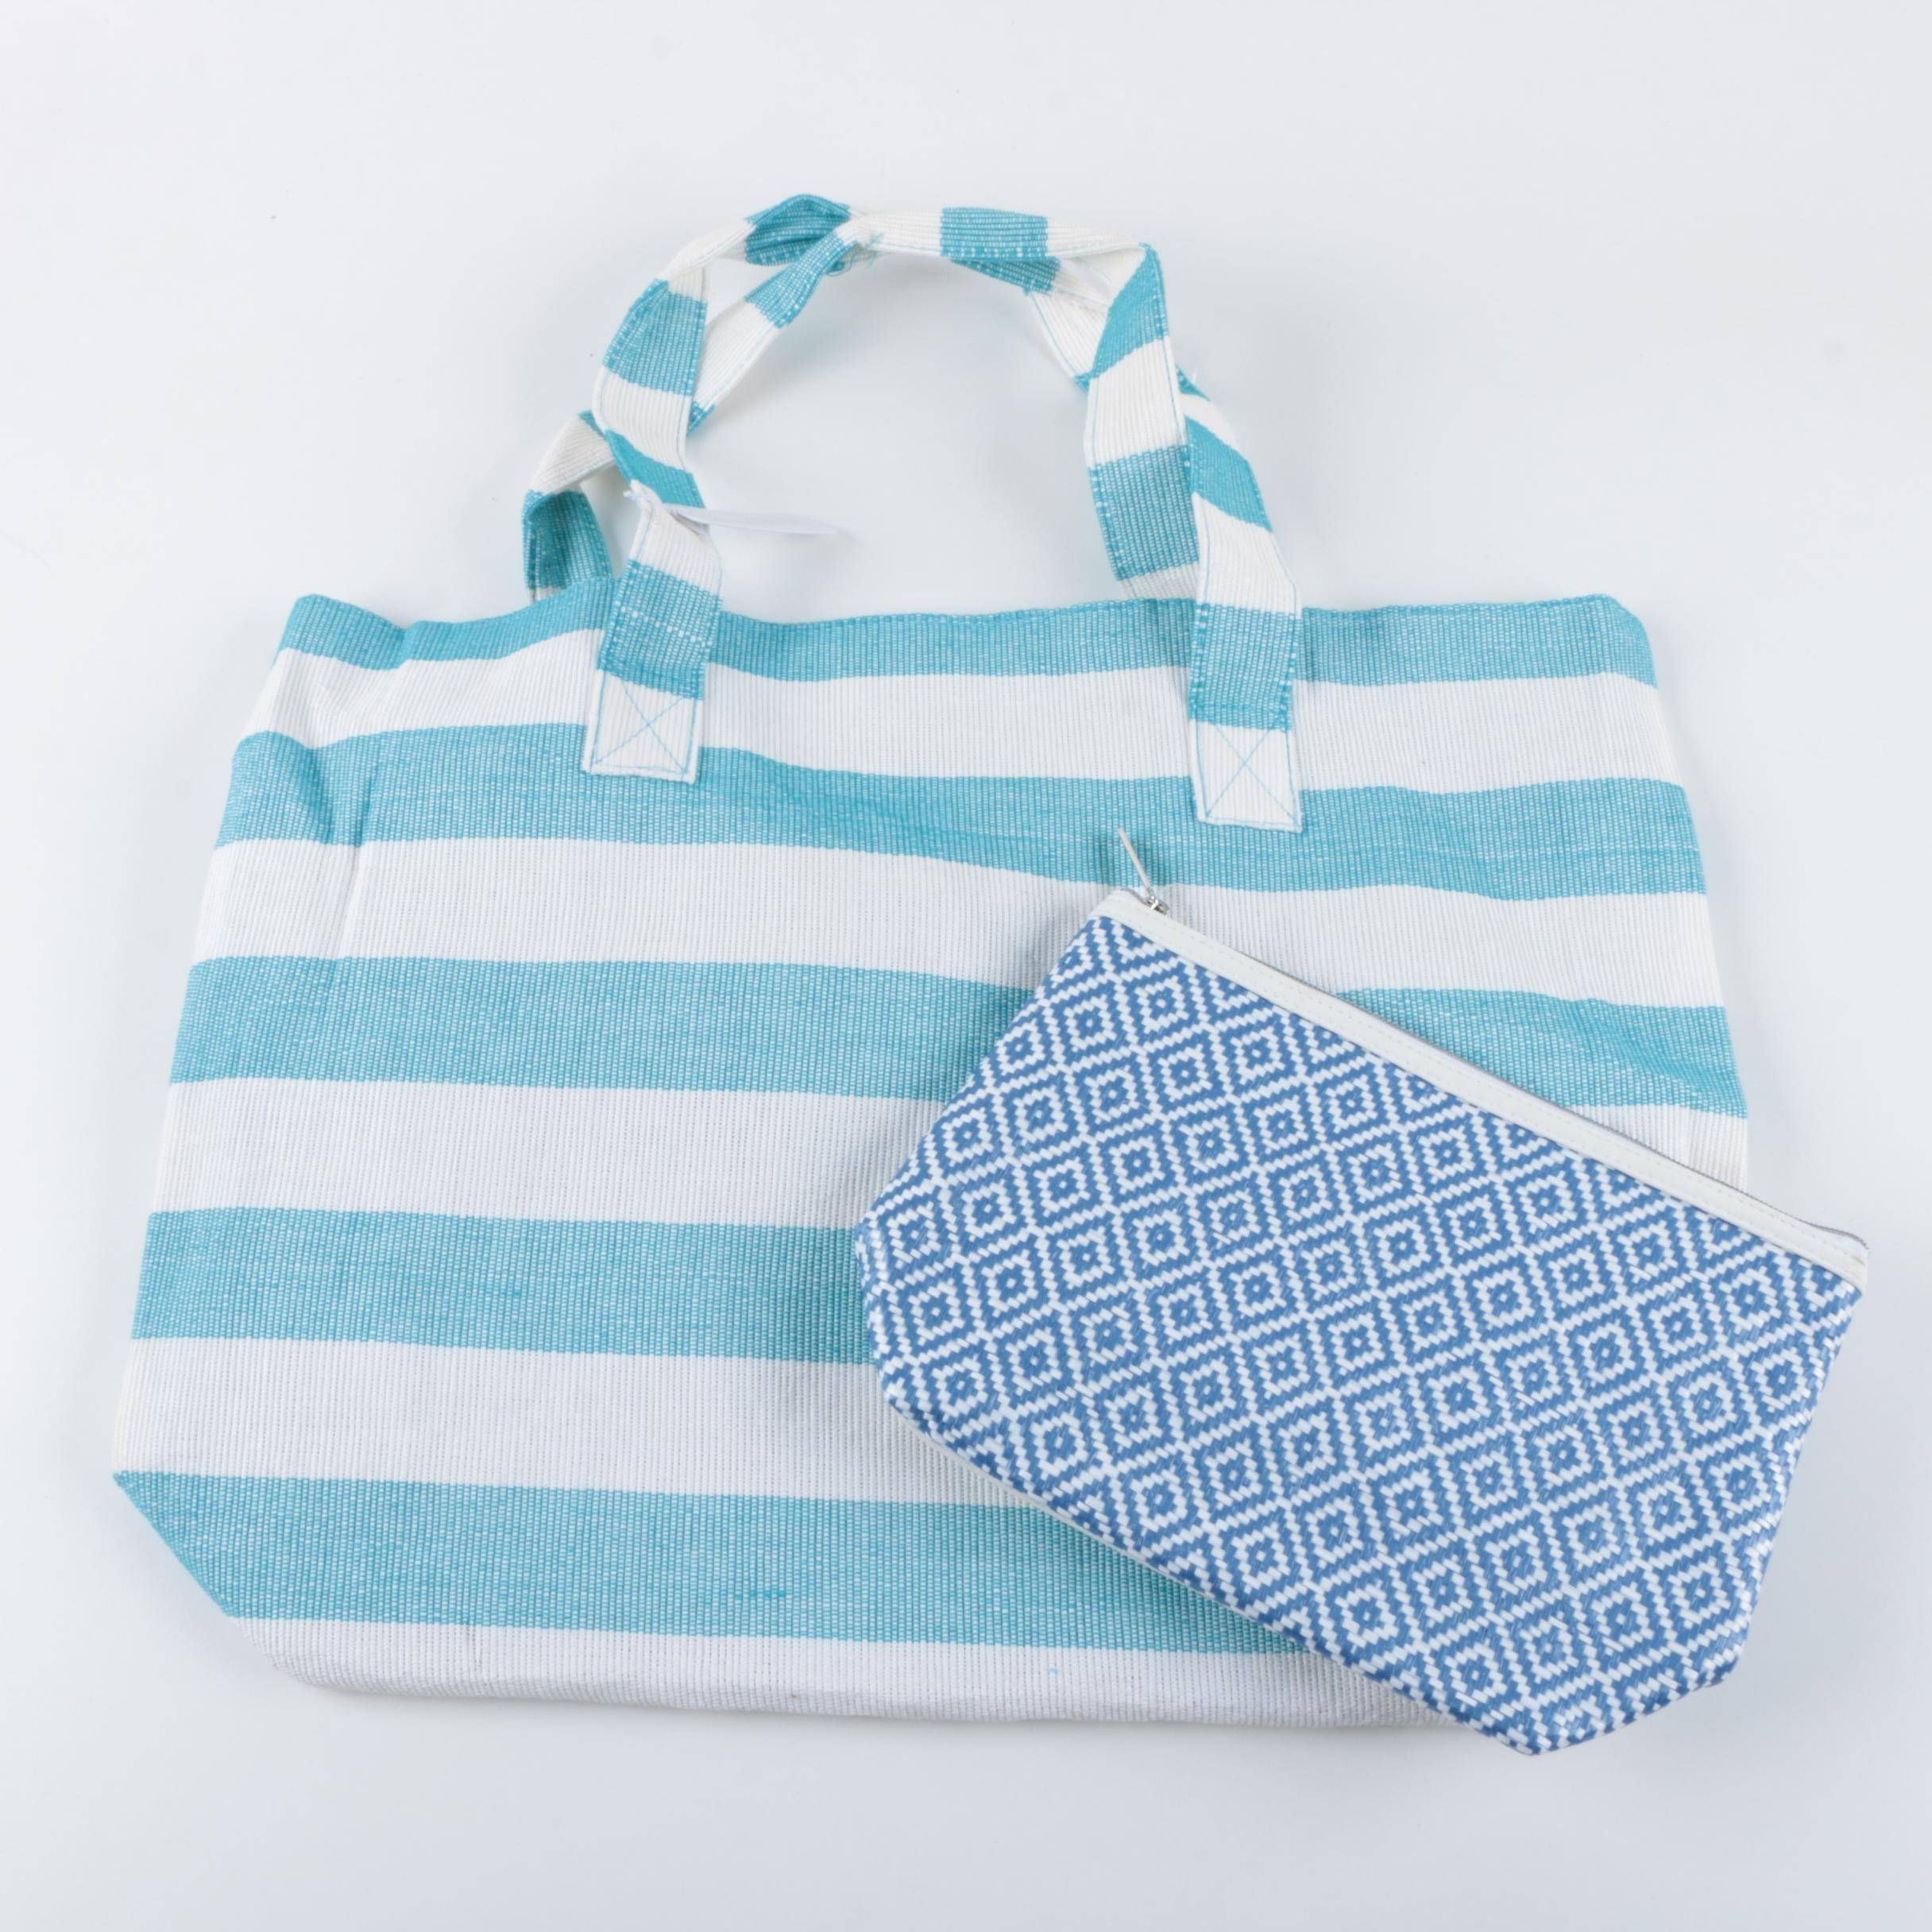 Nordstrom Cosmetic Bag and Charming Charlie Tote